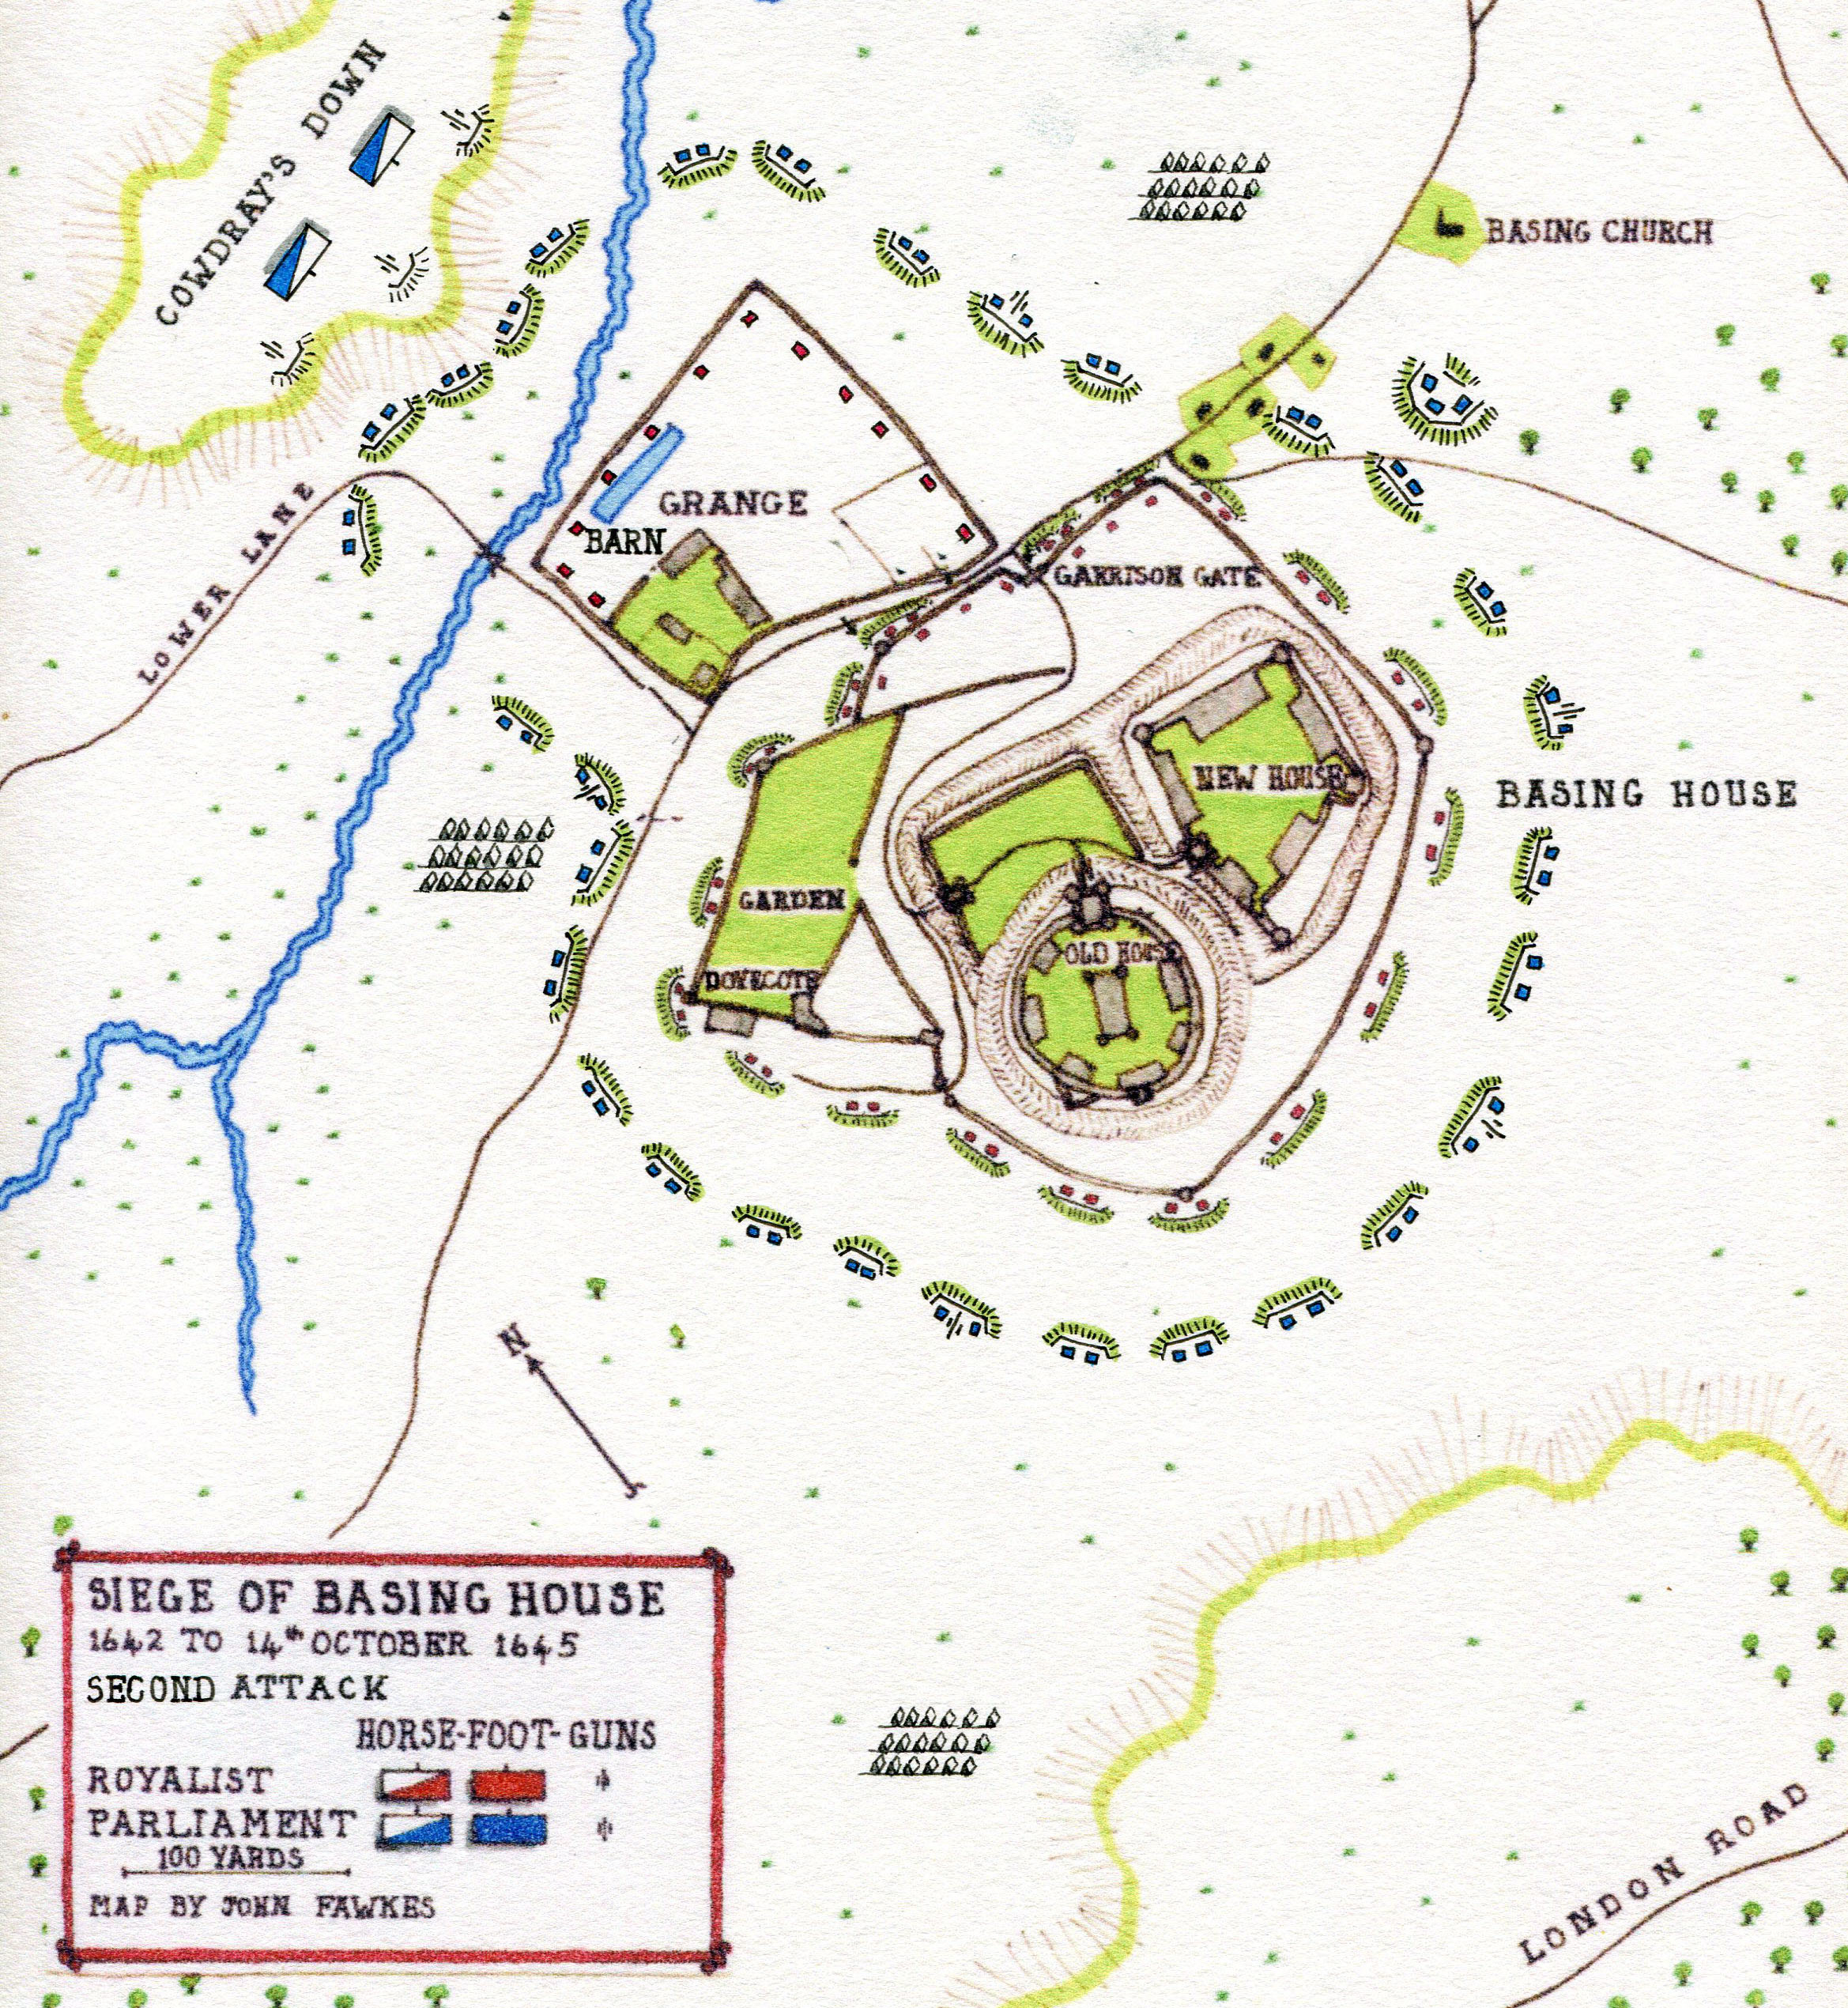 Map of the Second Attack on Basing House from 11th July 1644: Siege of Basing House 1642 to 1645 during the English Civil War